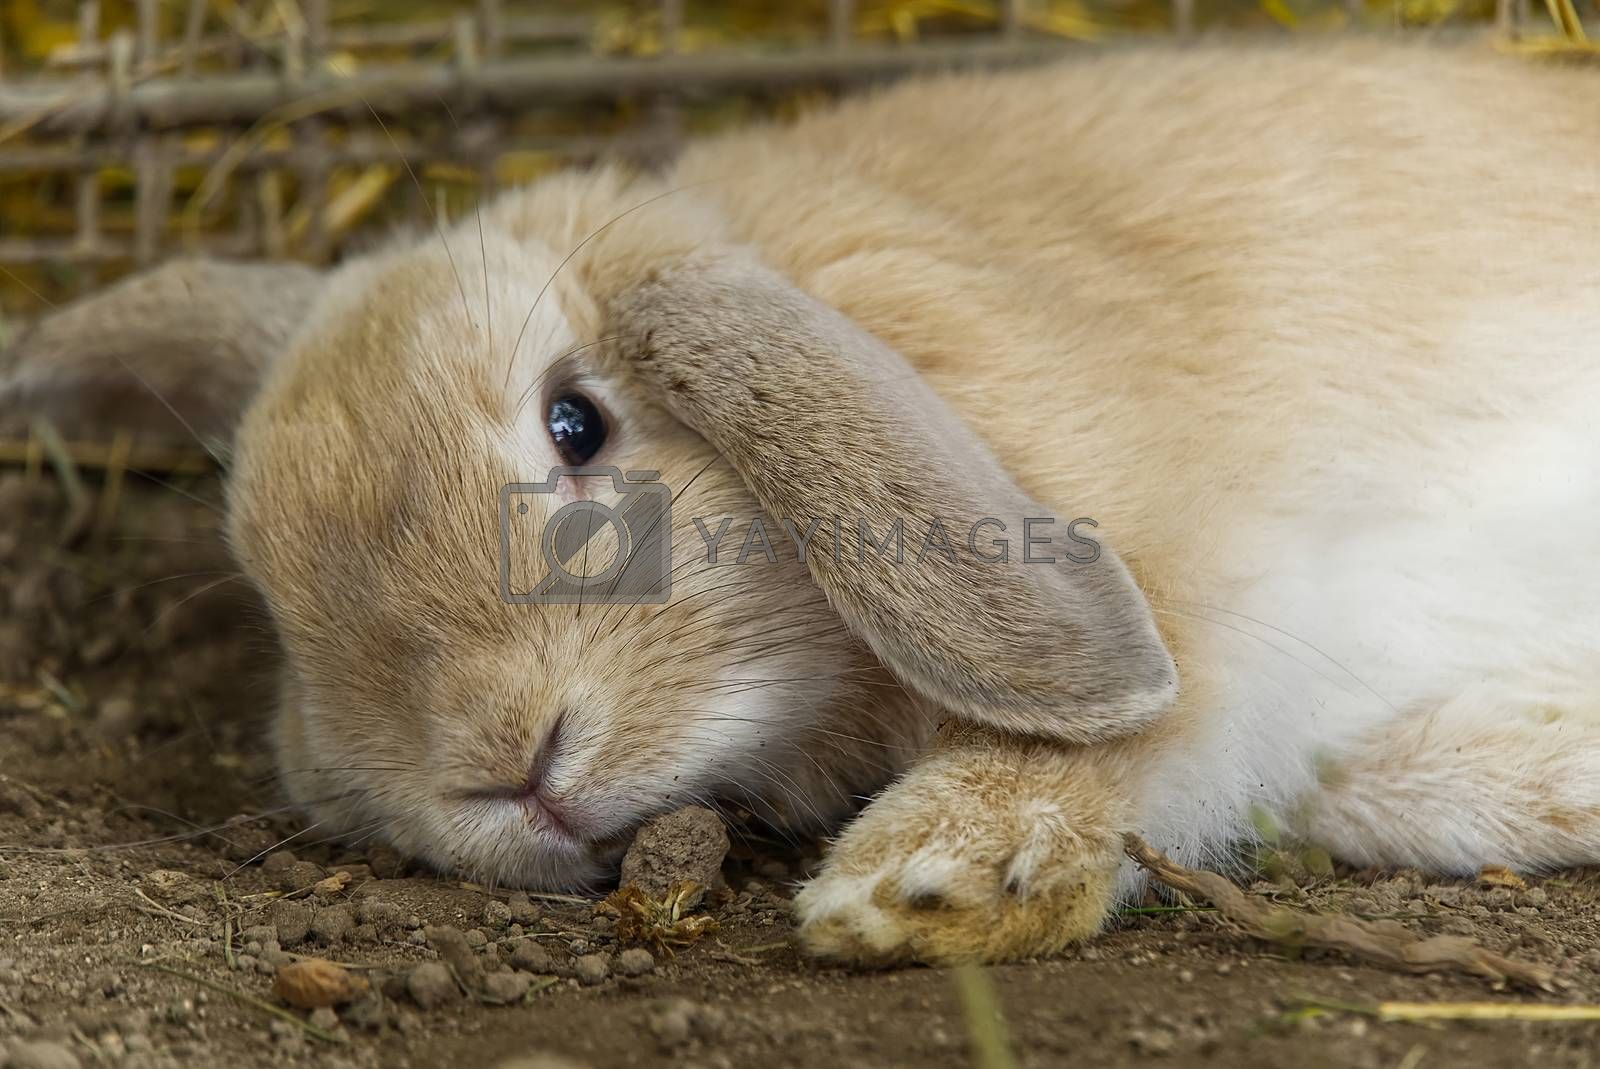 Cute fluffy rabbit in the hay. Gray rabbit on Dry Grass